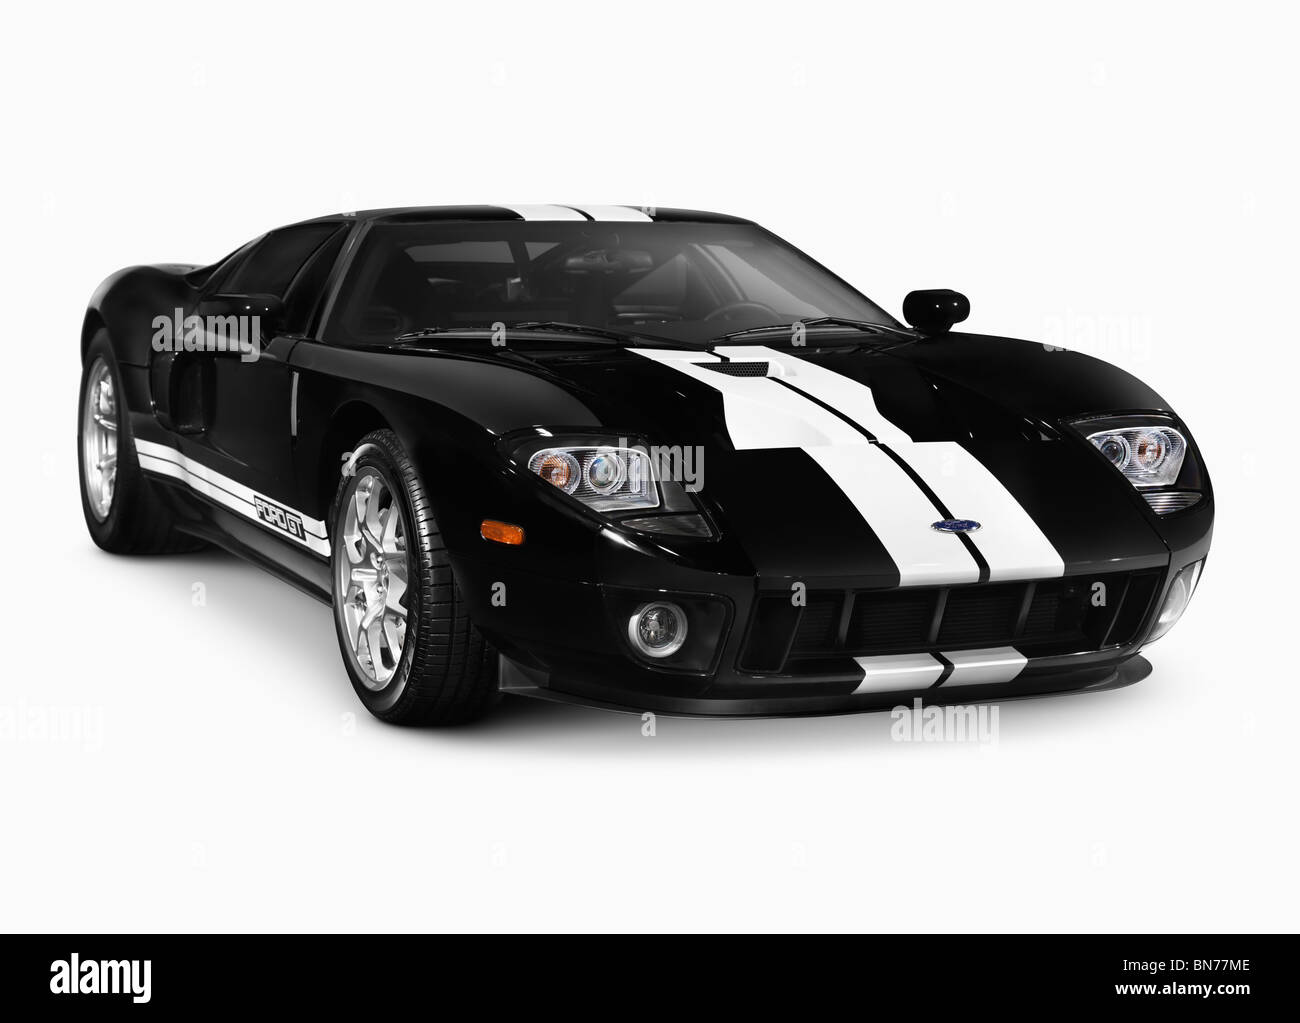 Black 2005 2006 Ford Gt Supercar Sports Car Isolated With Clipping Stock Photo Alamy